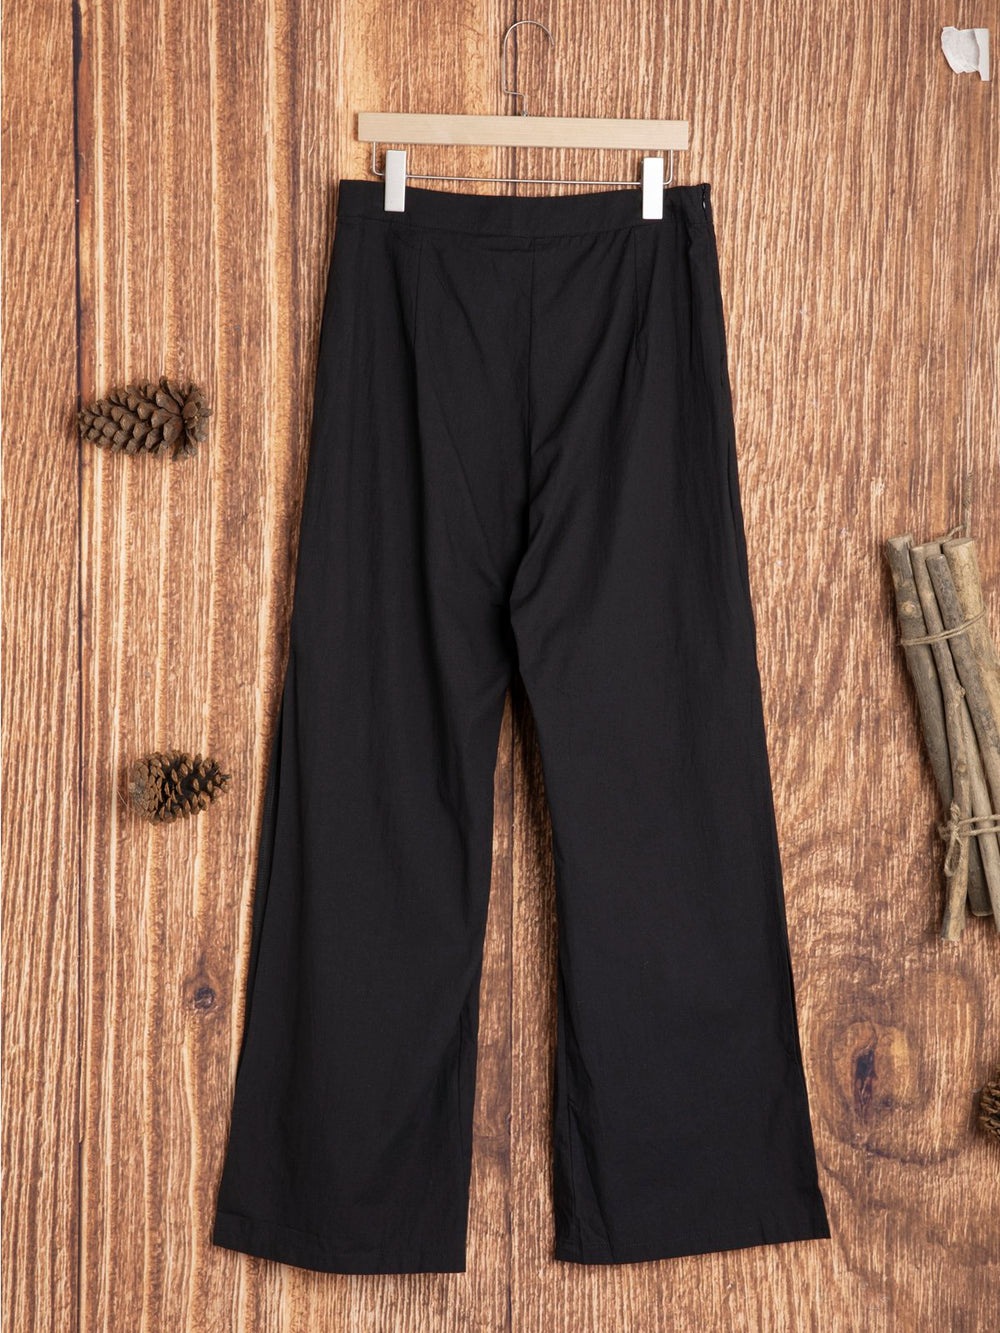 Solid Women Casual Cotton-Blend Bottoms